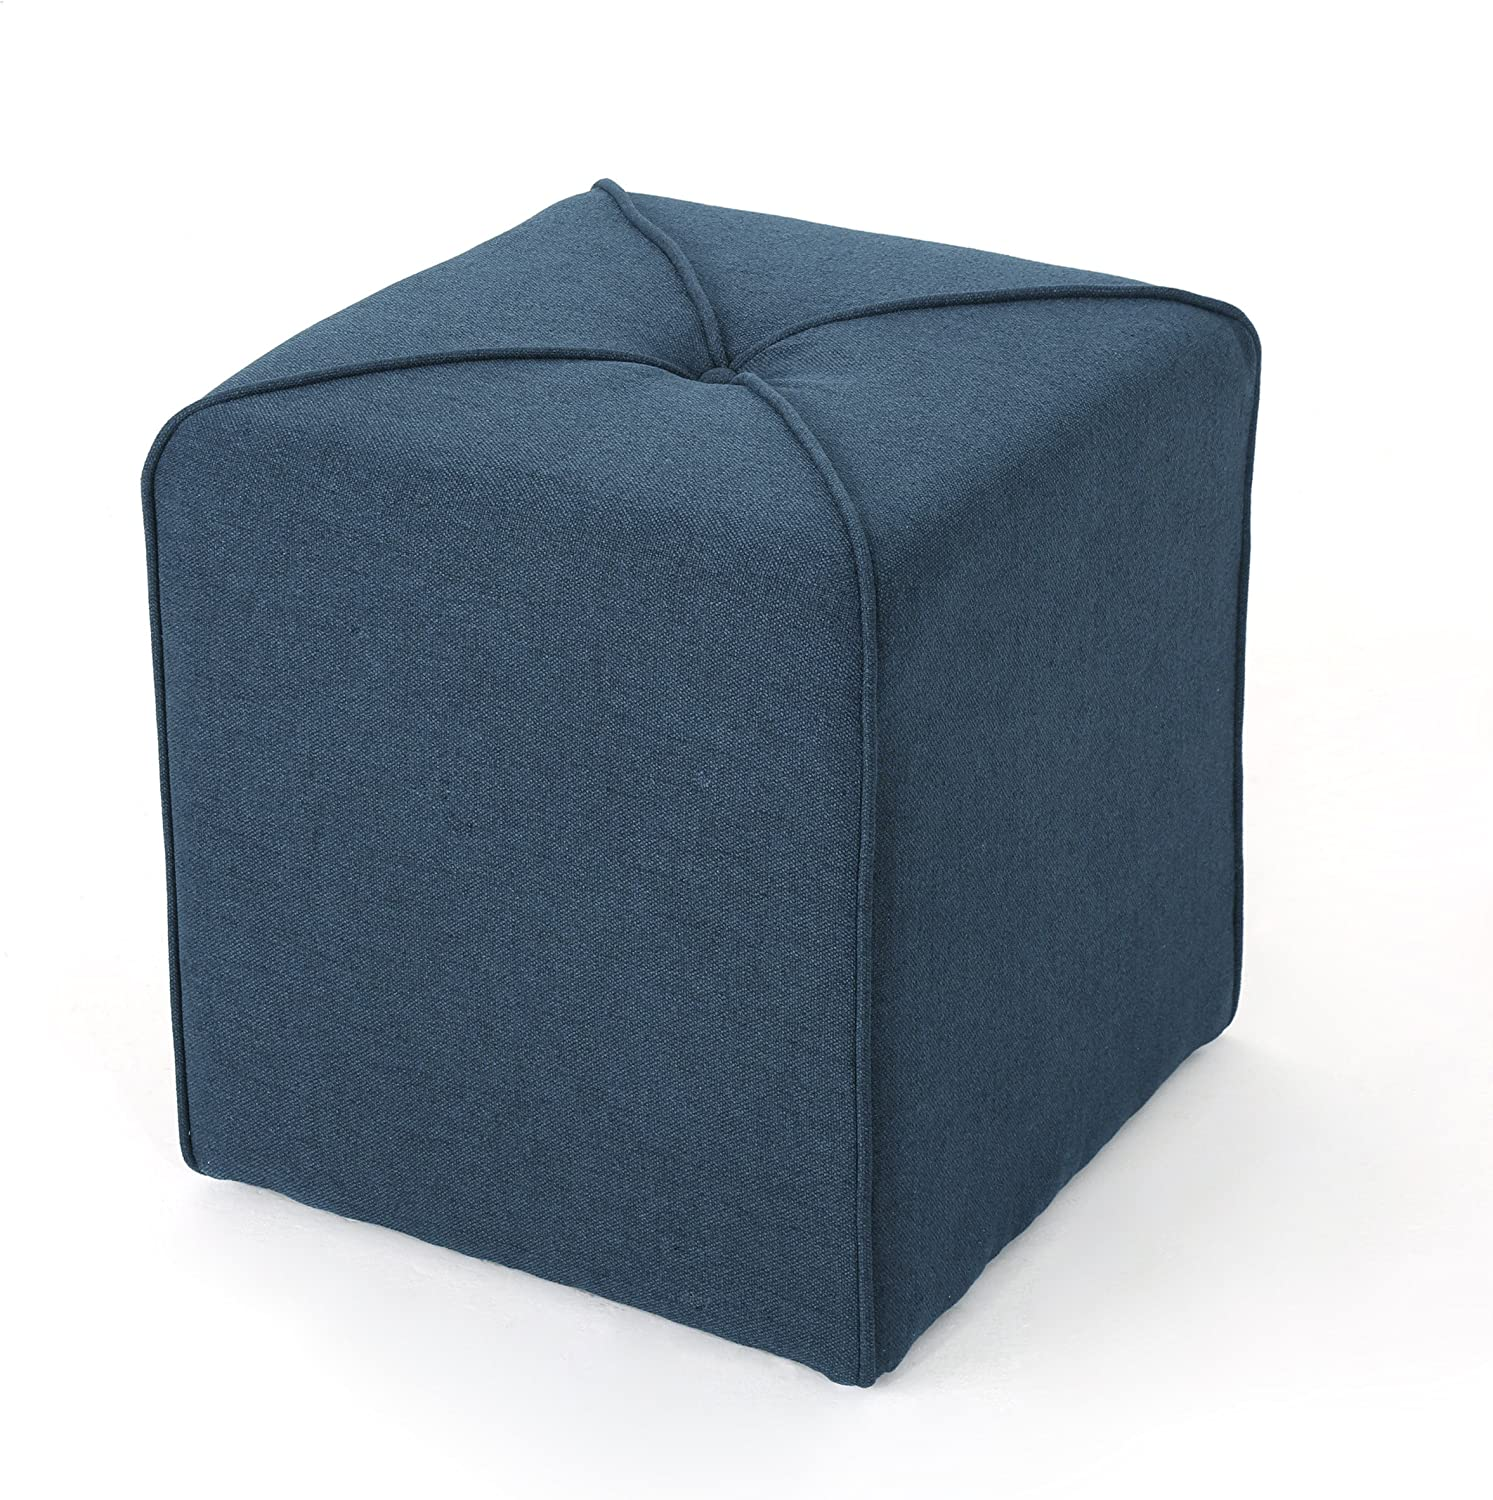 Christopher Knight Home Kenyon Fabric Square Ottoman, Navy Blue